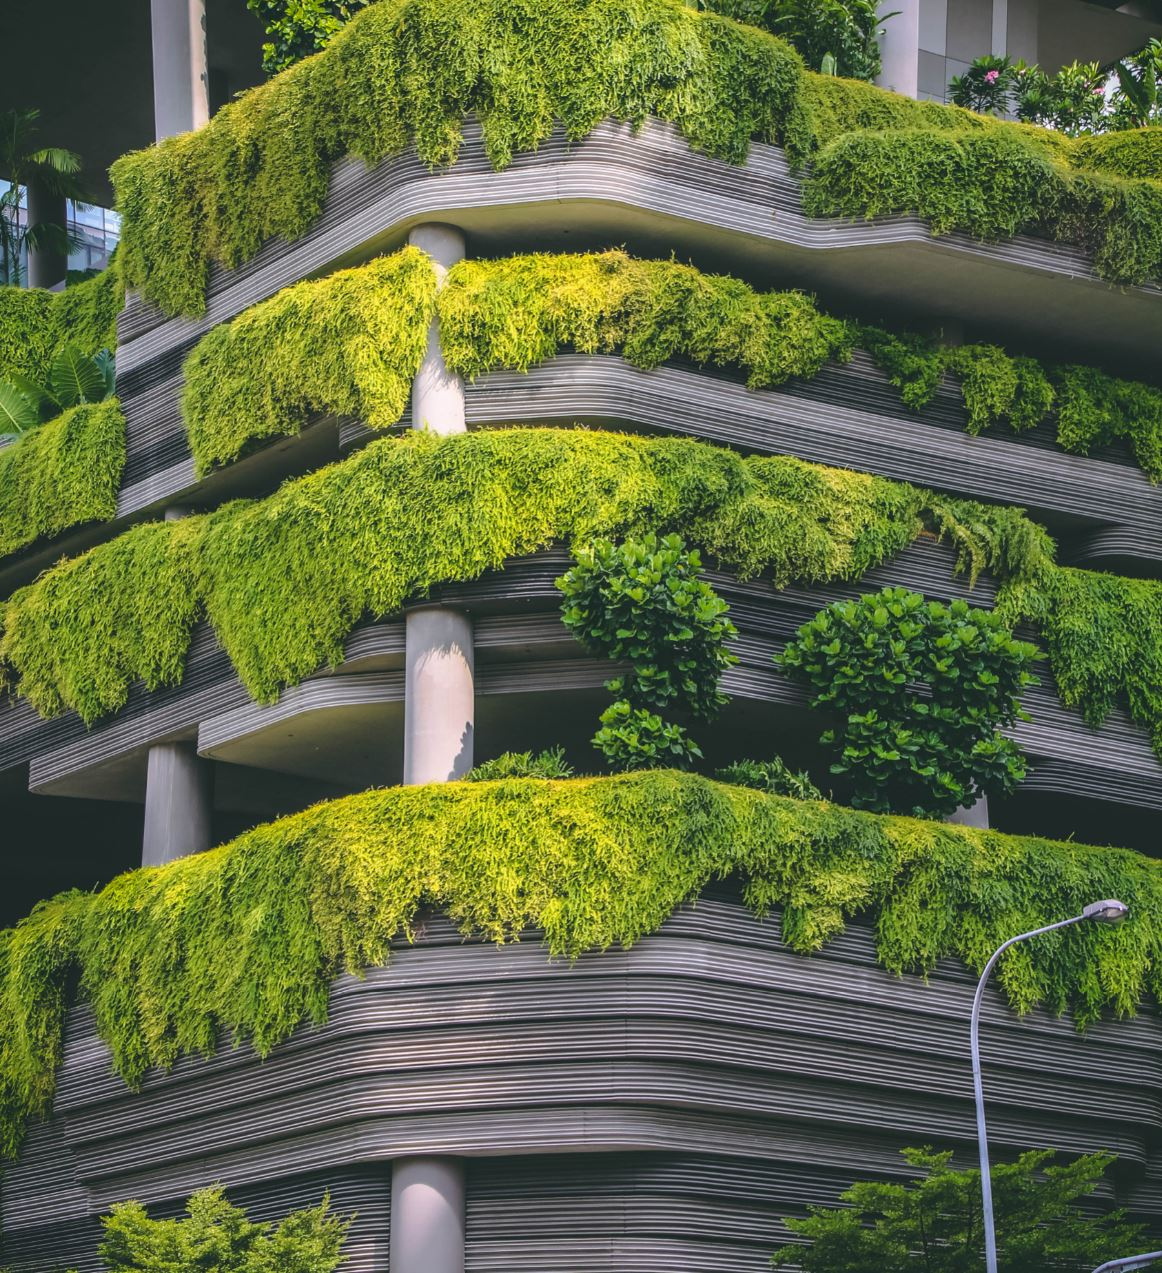 Parkroyal has been lauded for its unique 'hotel-in-a-garden' architecture. - Image Credit:  Victor Garcia via Unsplash